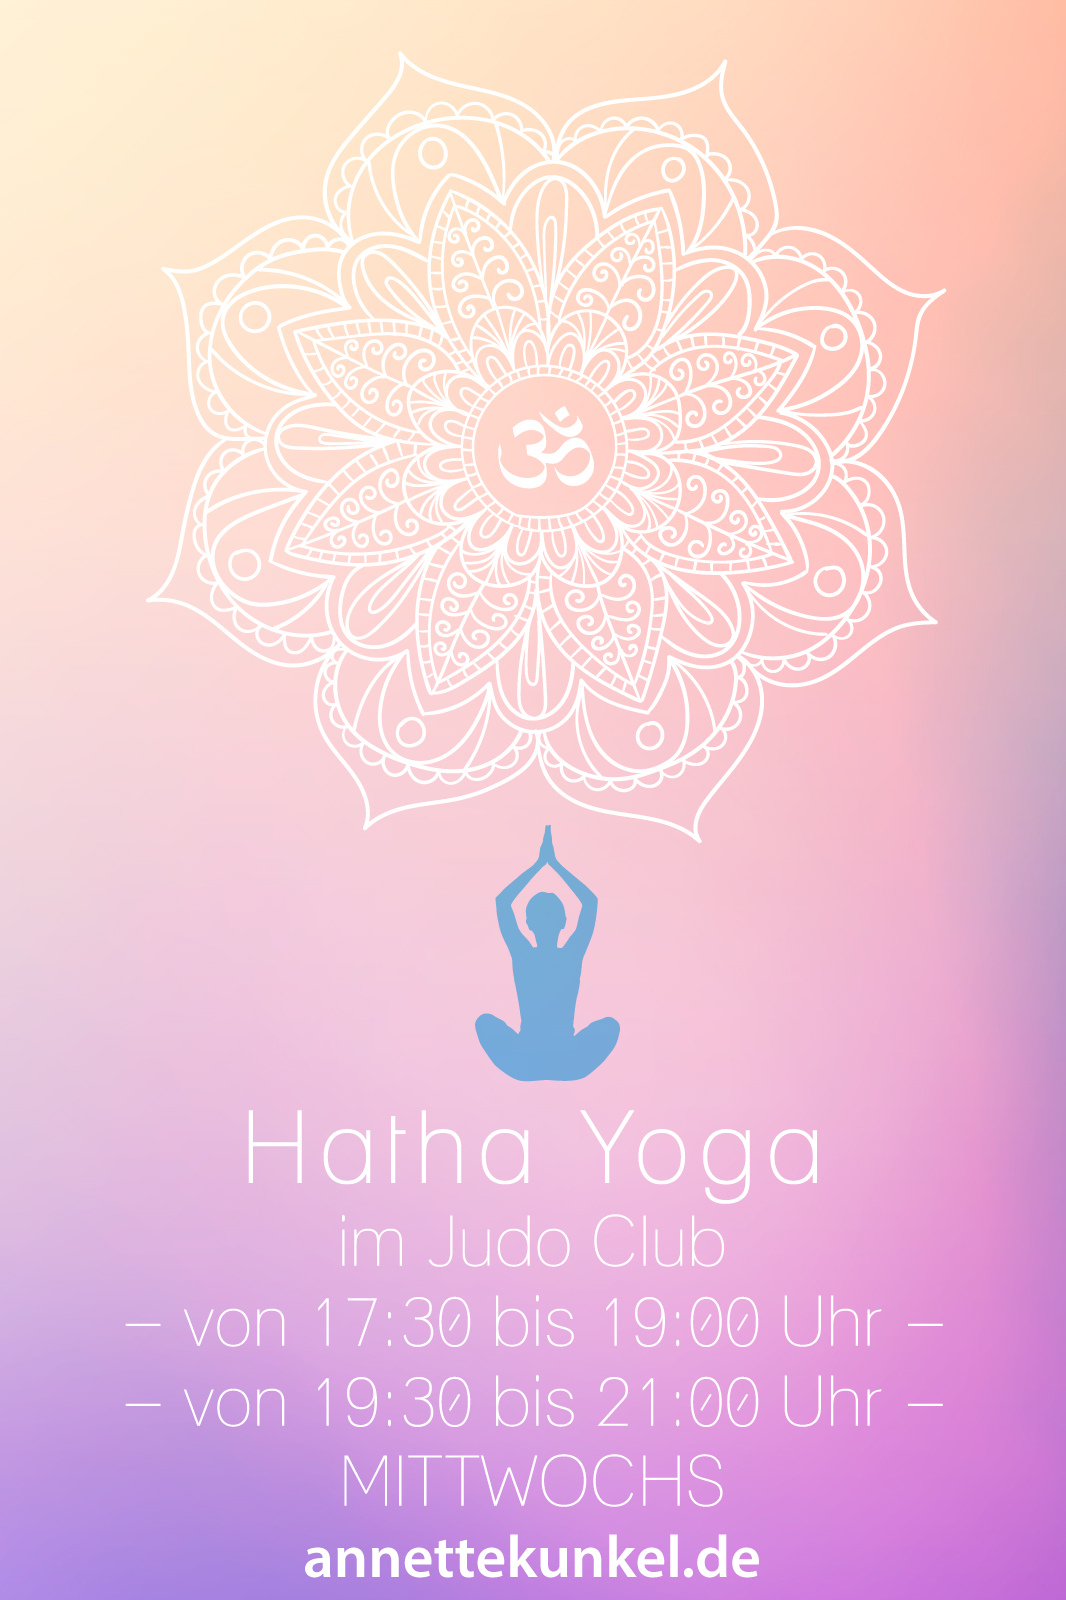 Hatha Yoga in Bad Säckingen ab 10 Euro - direkt am Rhein - geniale Hatha Yoga Stunde.